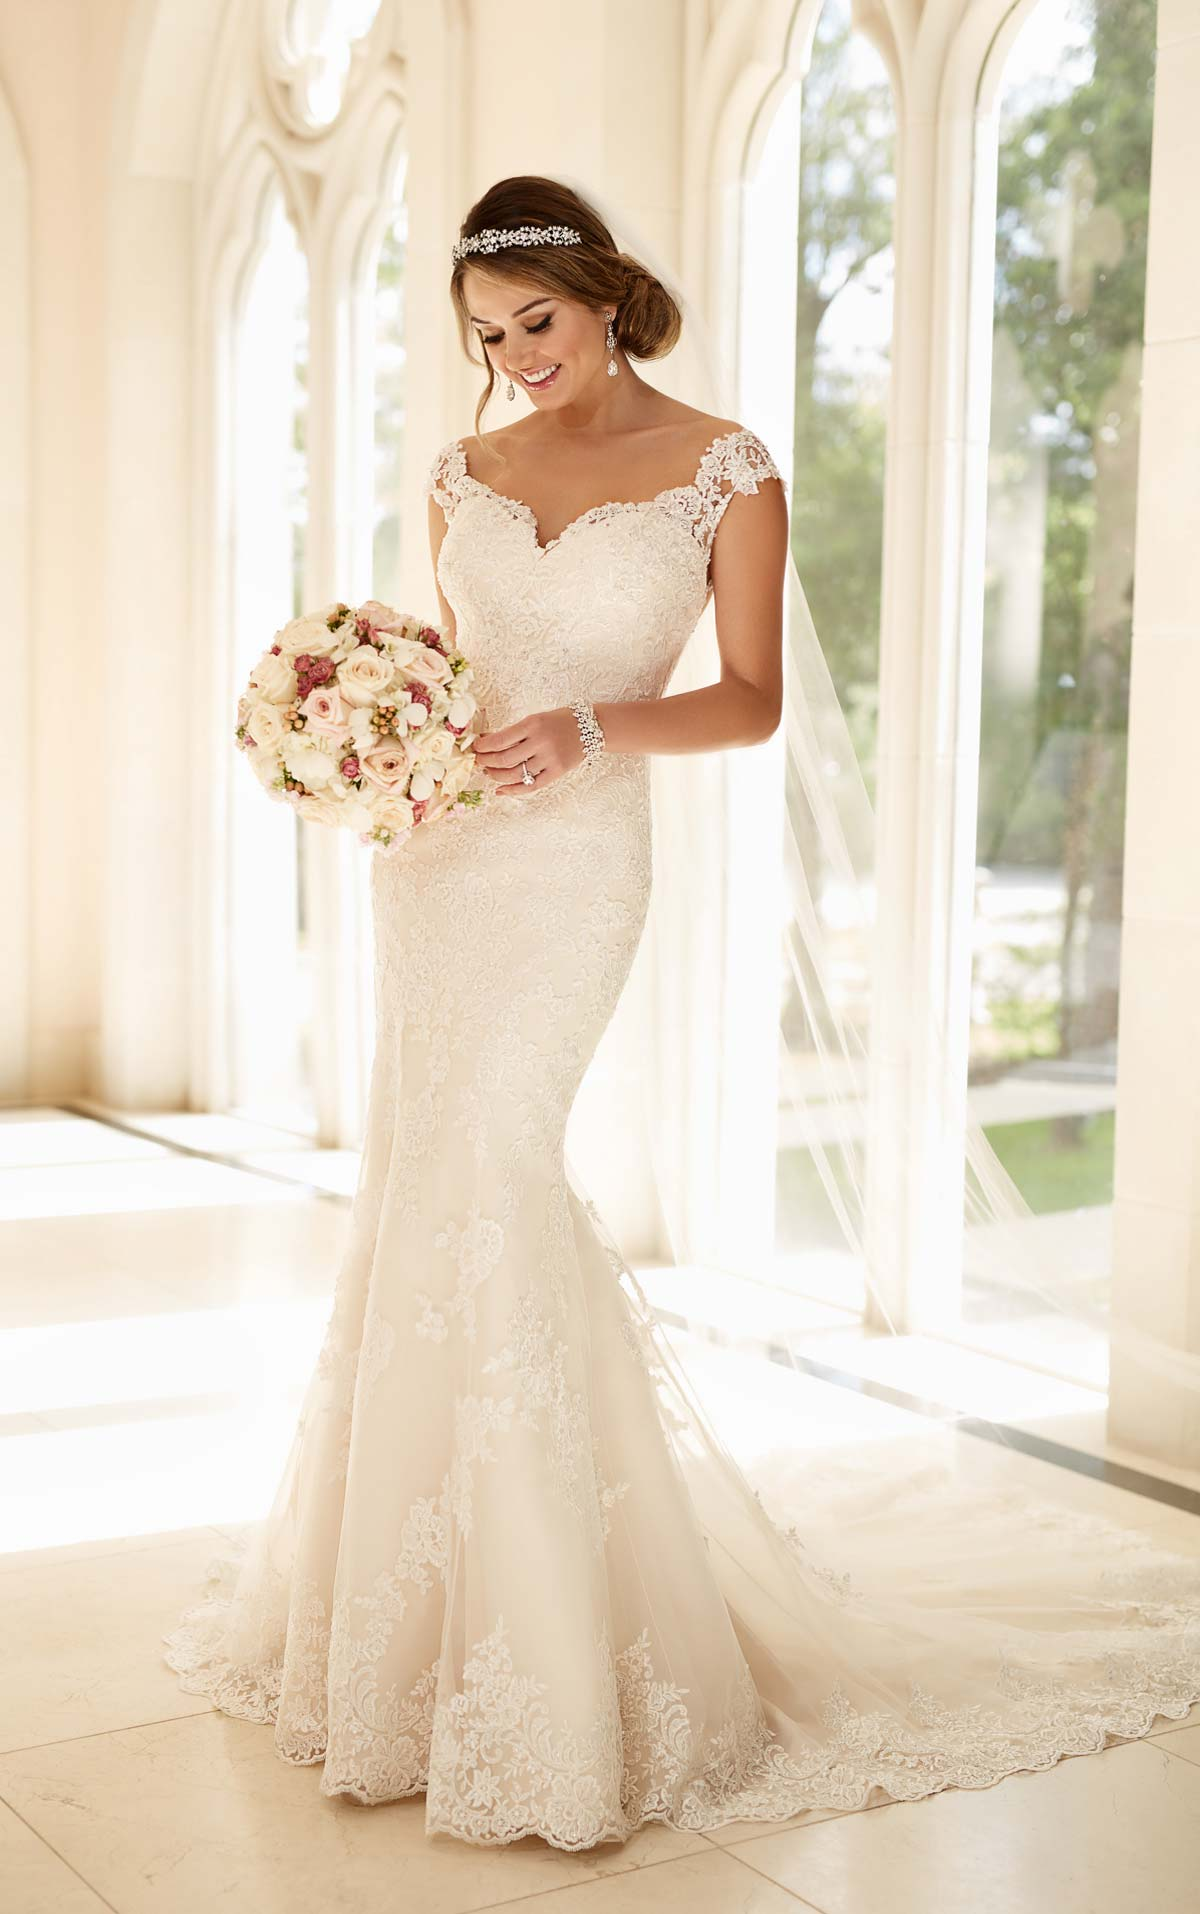 Bridal Boutique Semi-Annual Sample Sale 40%-60% Select Wedding Gowns ...